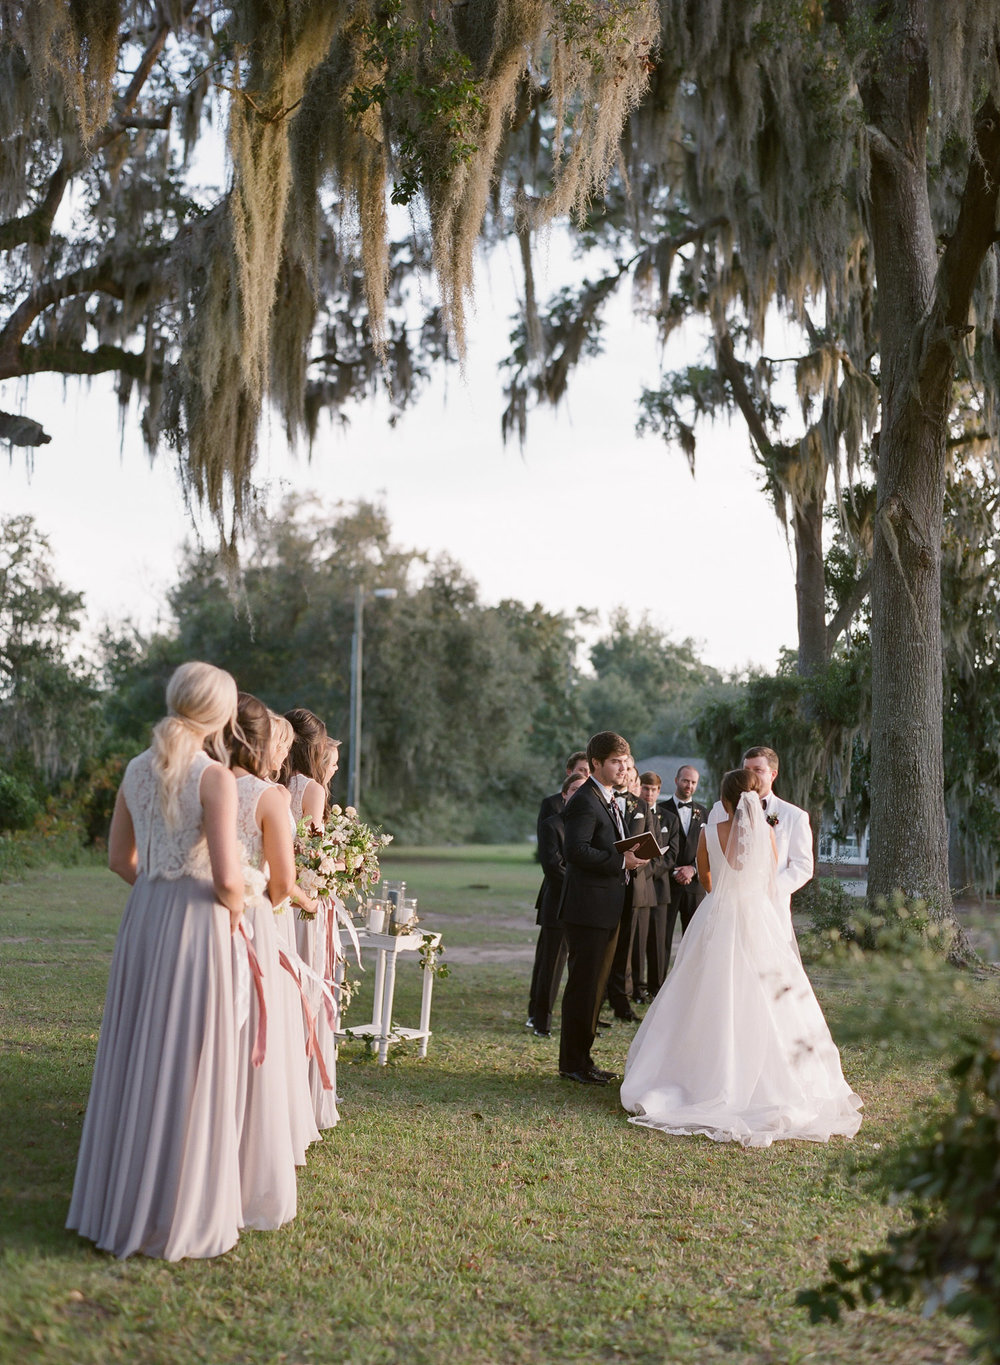 Charleston-Wedding-Photographer-88.jpg